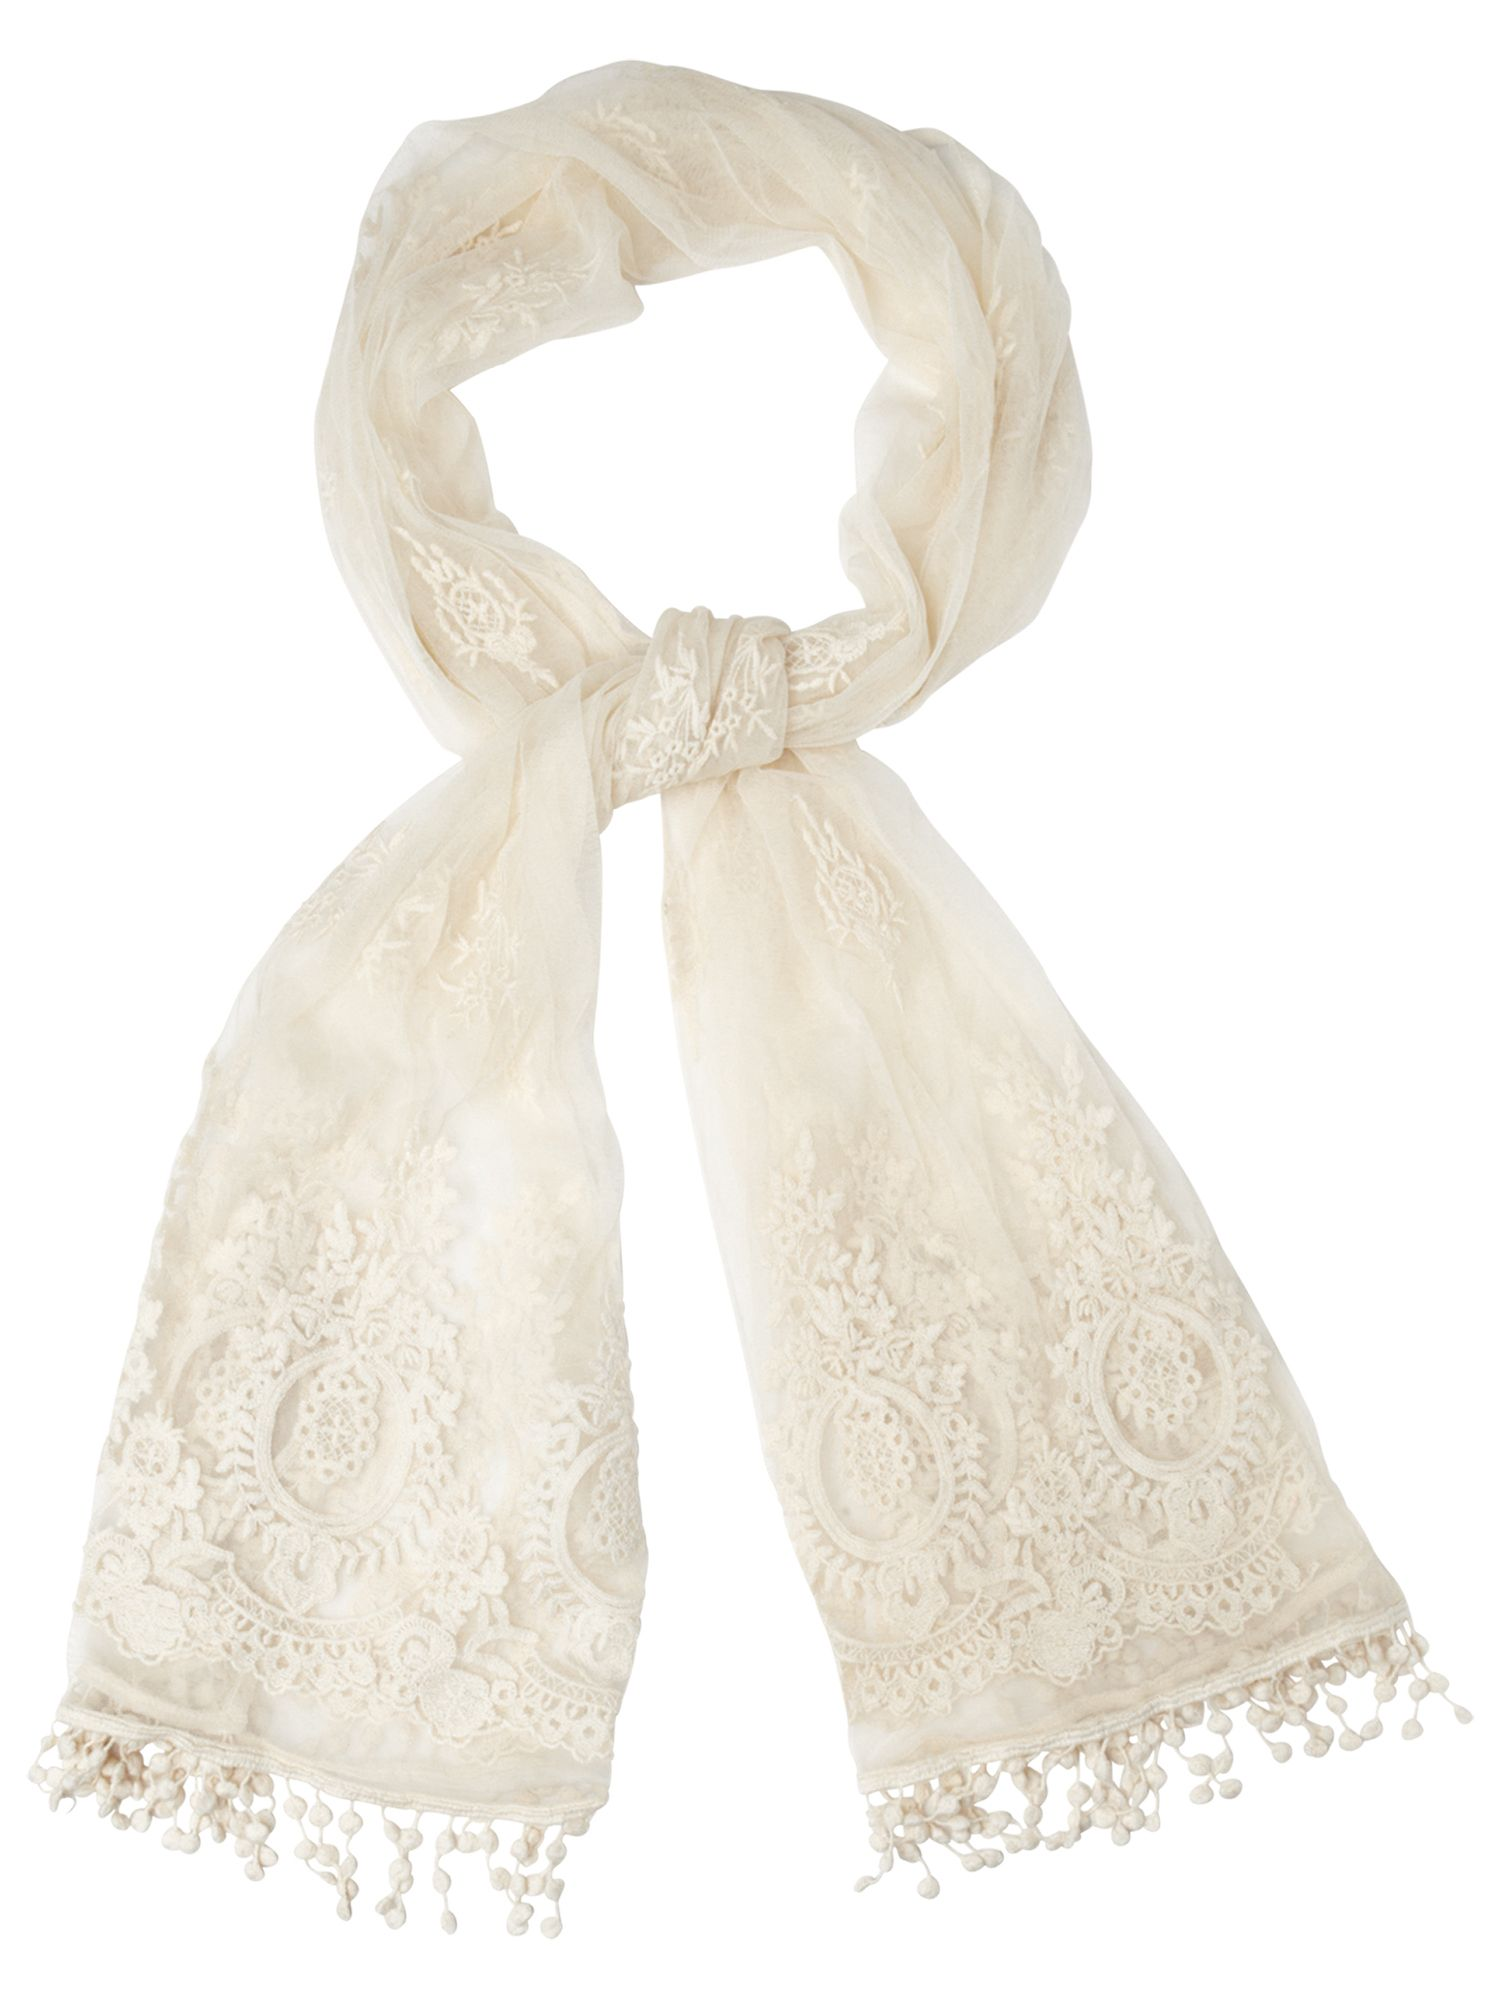 Maitea embroidered mesh scarf